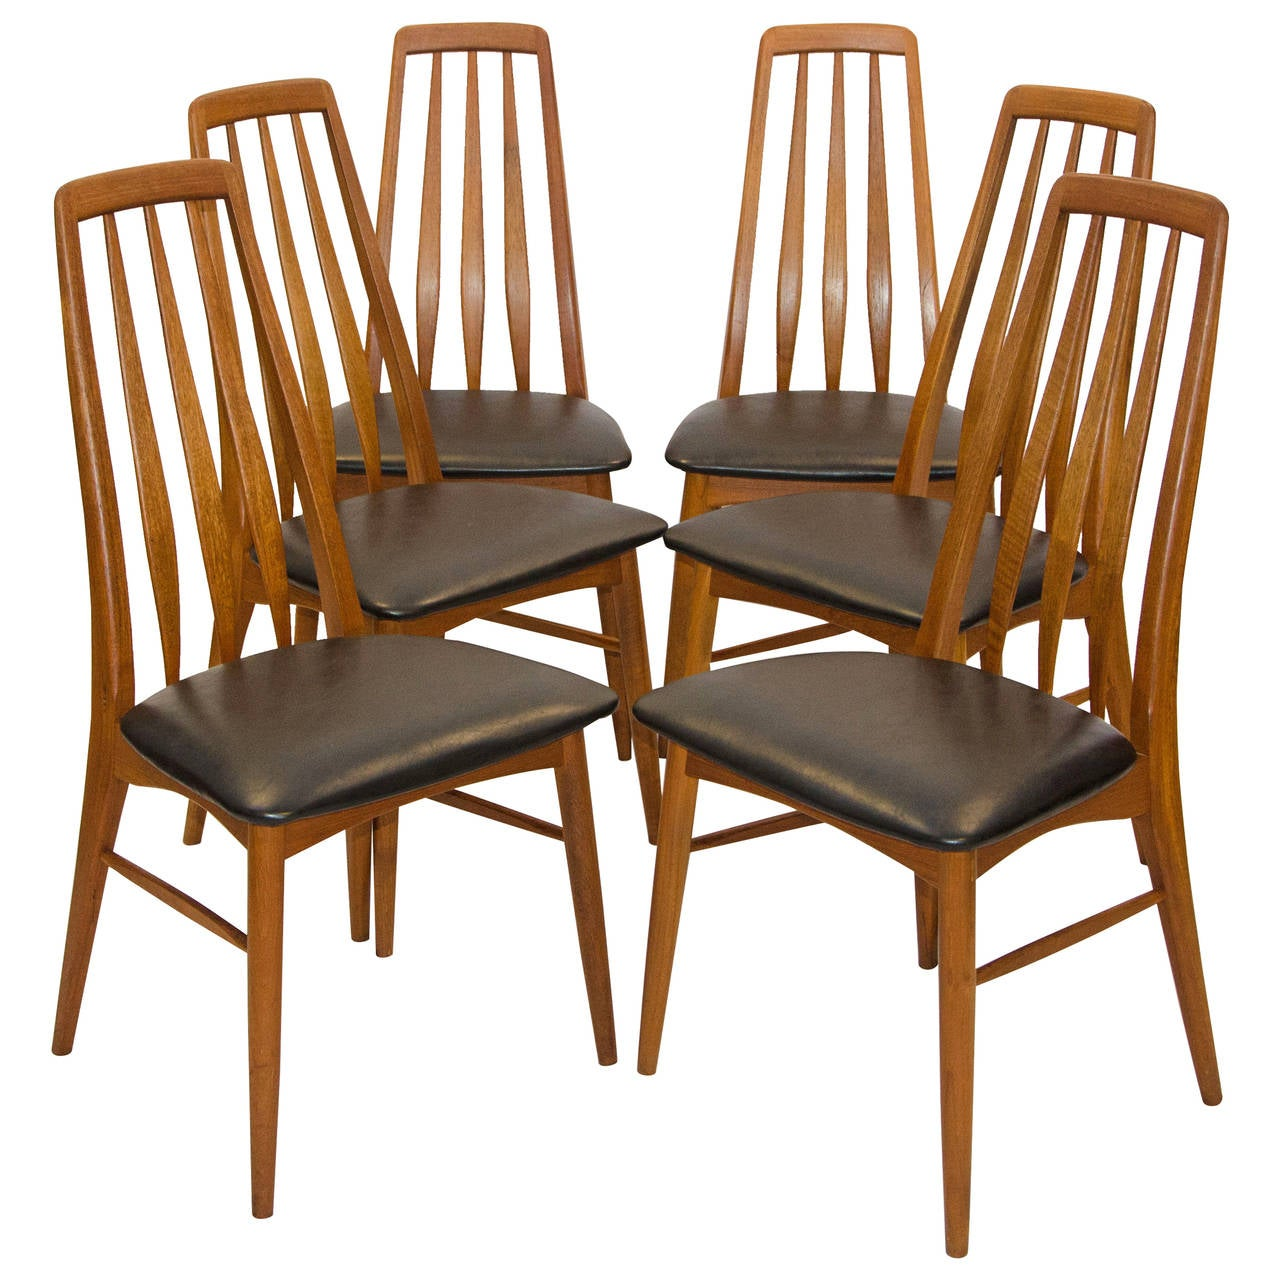 teak dining room chairs for sale marshmallow toddlers six danish koefoed hornslet at 1stdibs